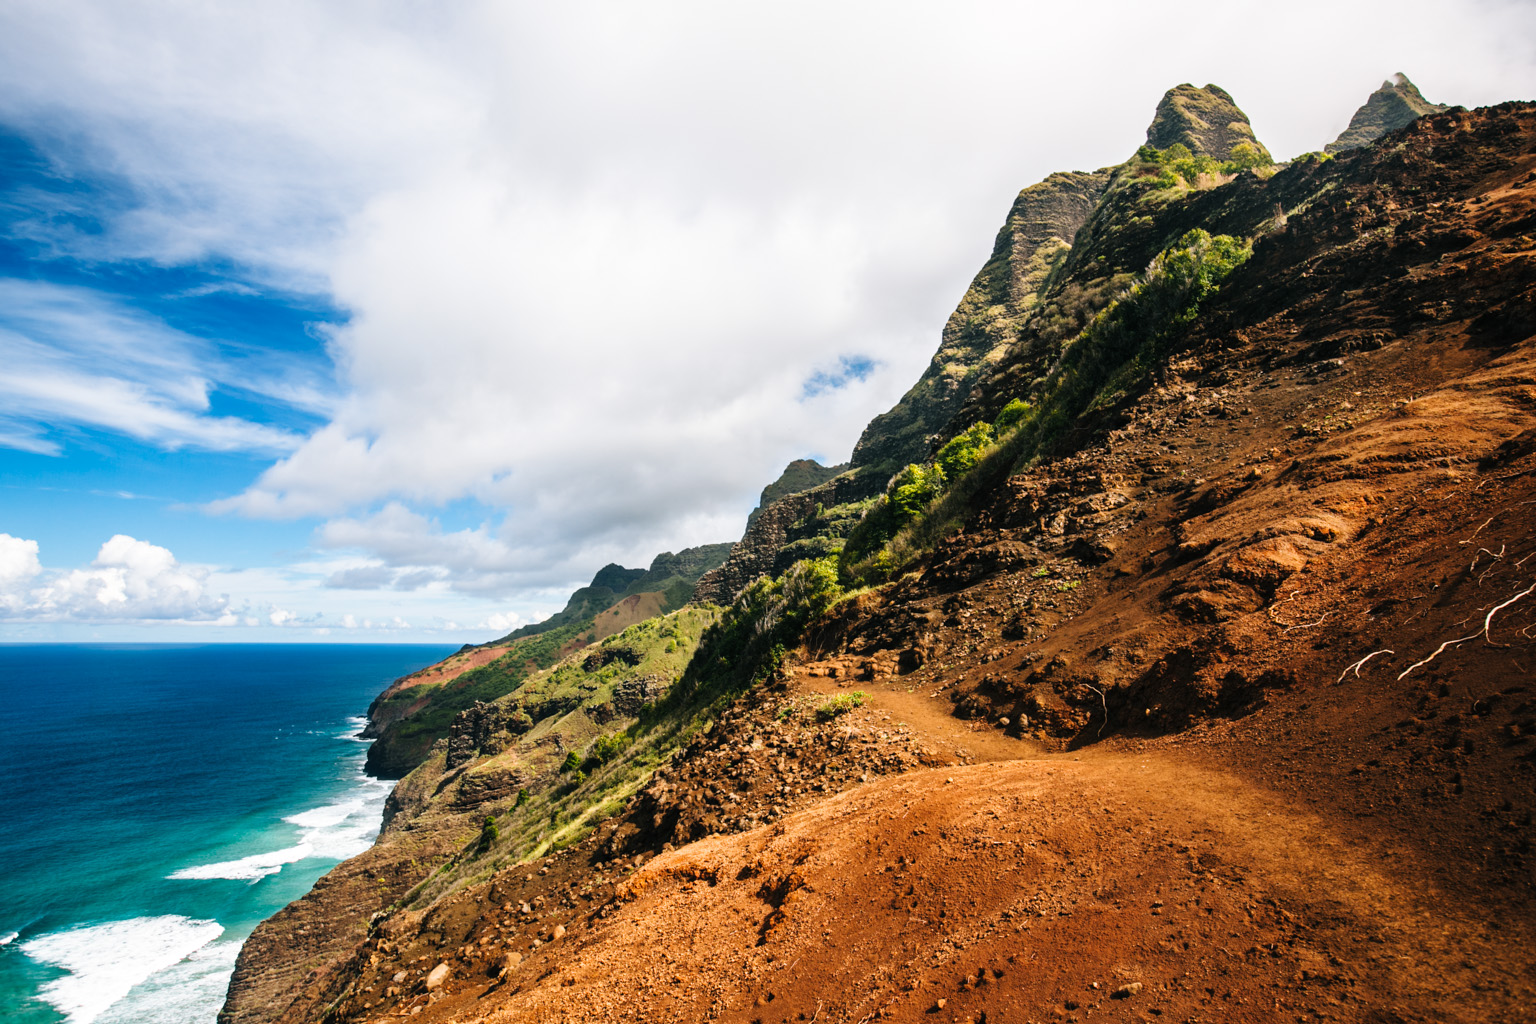 hiking kalalau trail without permit